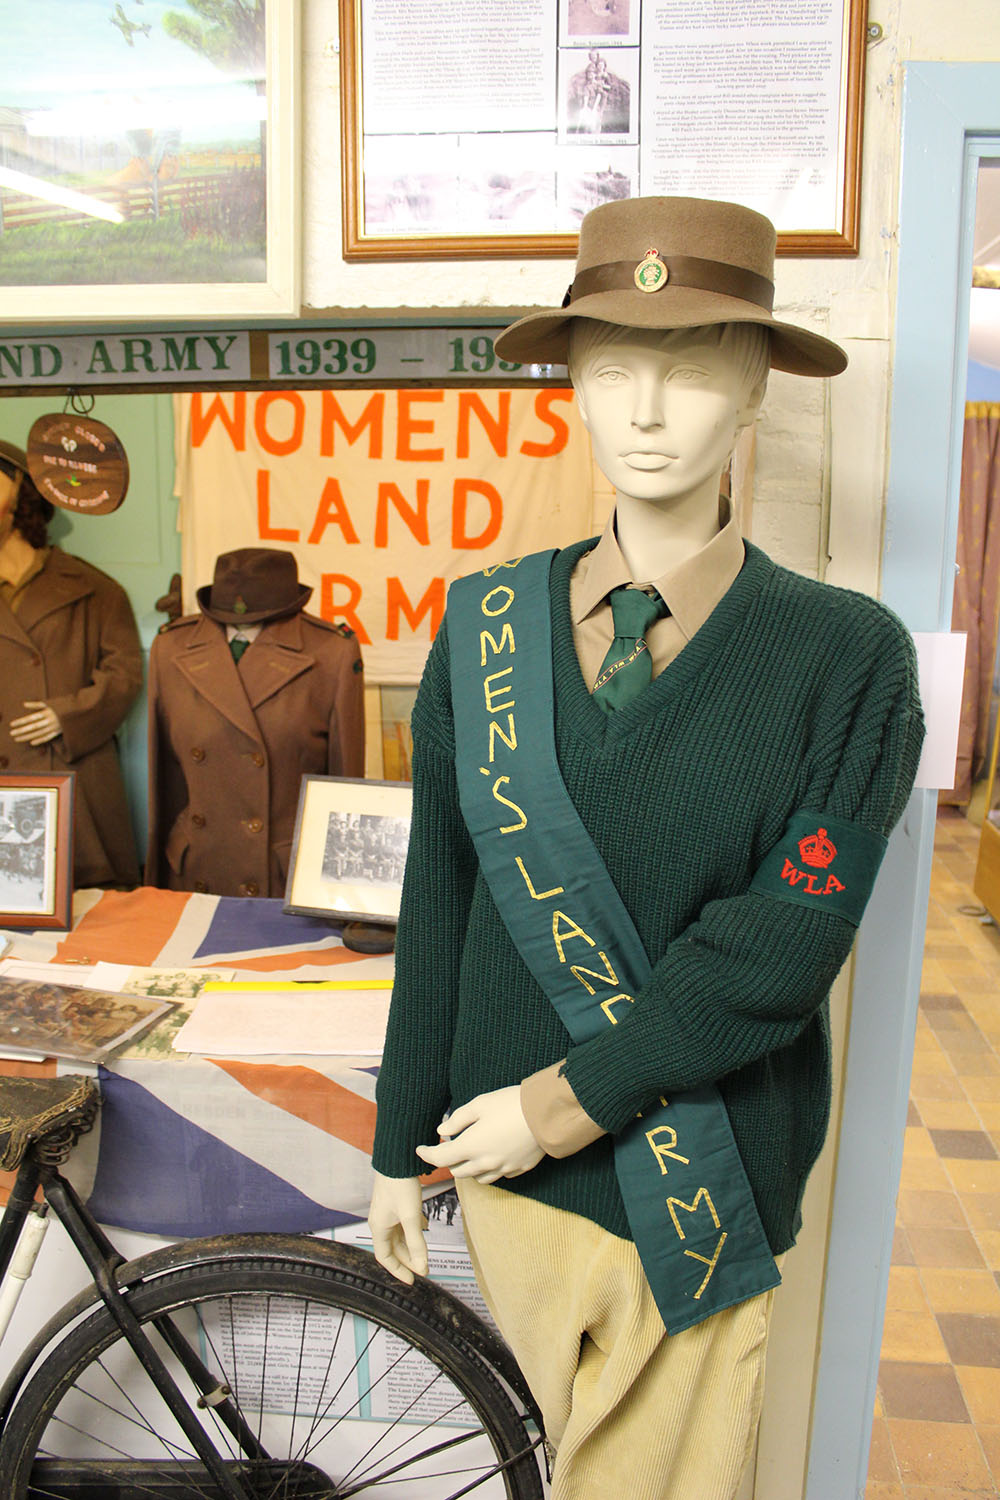 5ceacce0cba wla-display-romney-marsh-wartime-collection-brenzett-uniform-with ...